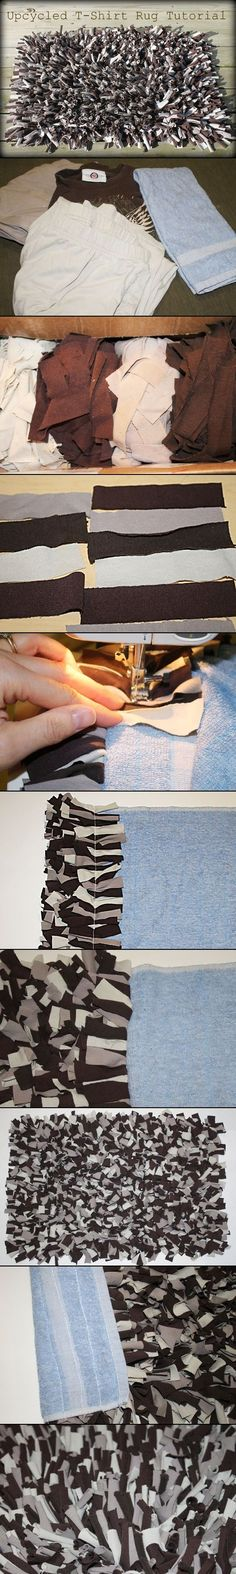 Super easy homemade shag rug - Reuse your old clothes and towels! *Sewing machine needed for this tutorial.